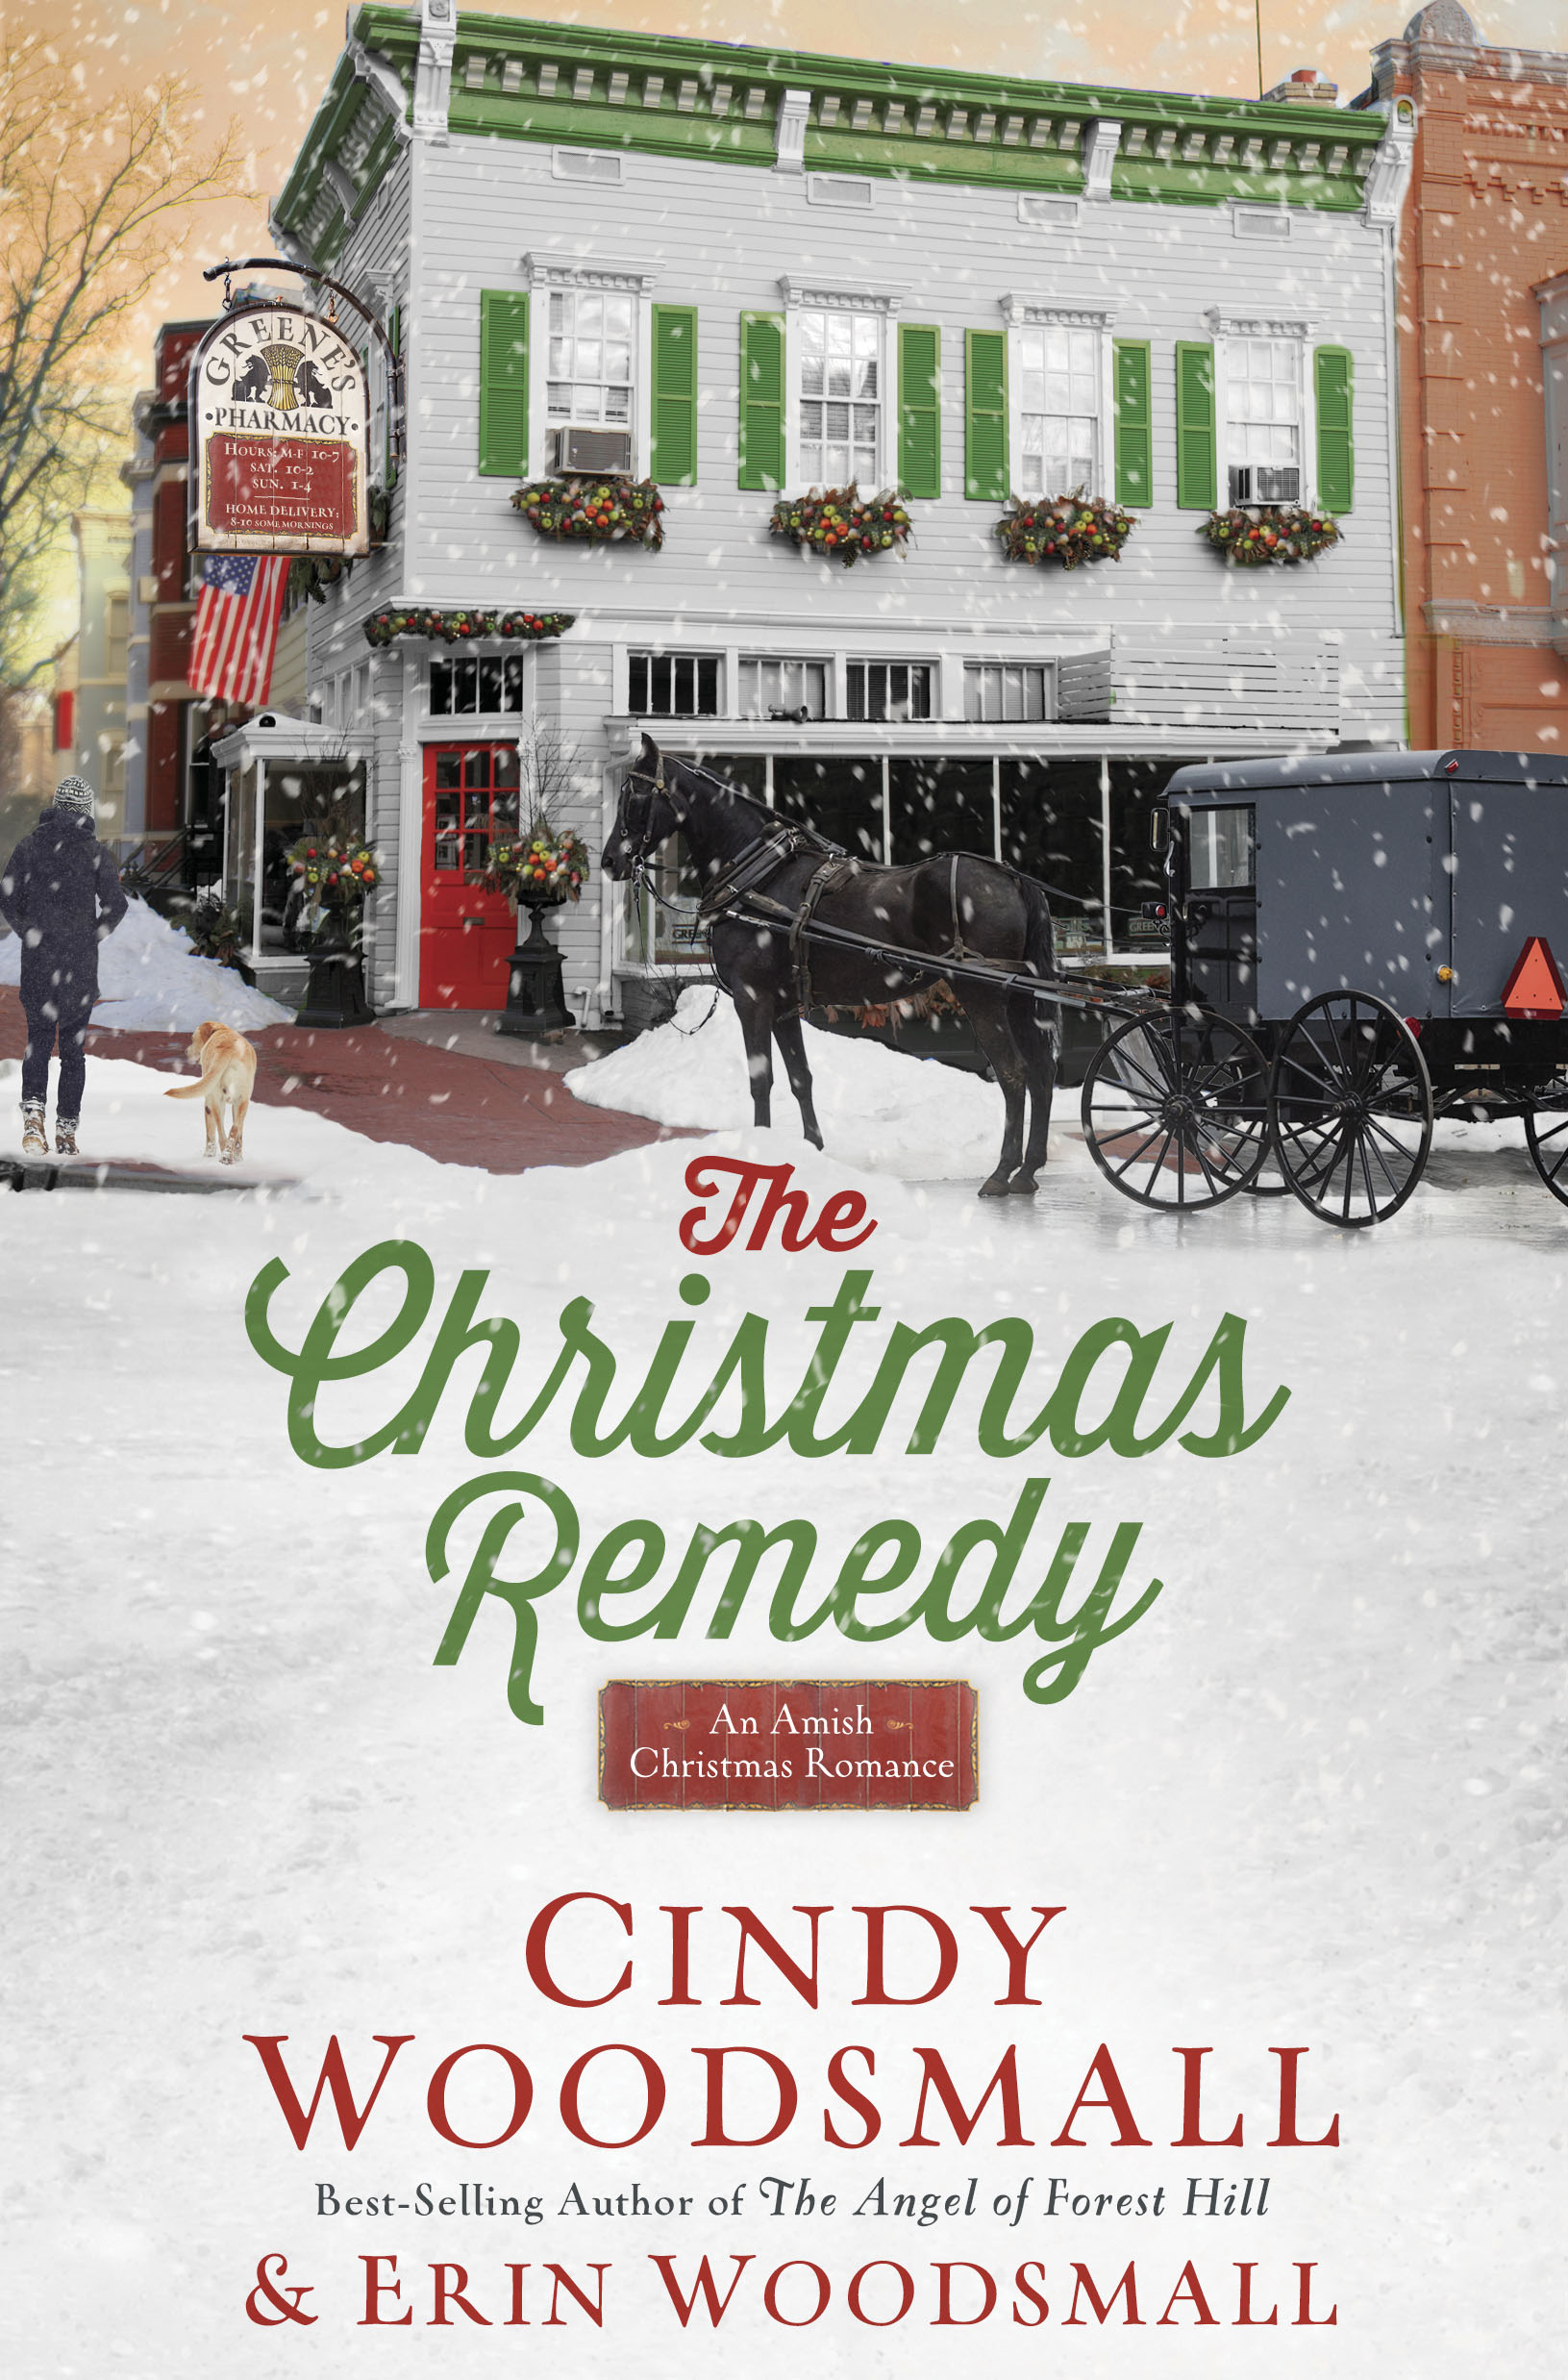 A list of all books by best-selling author Cindy Woodsmall